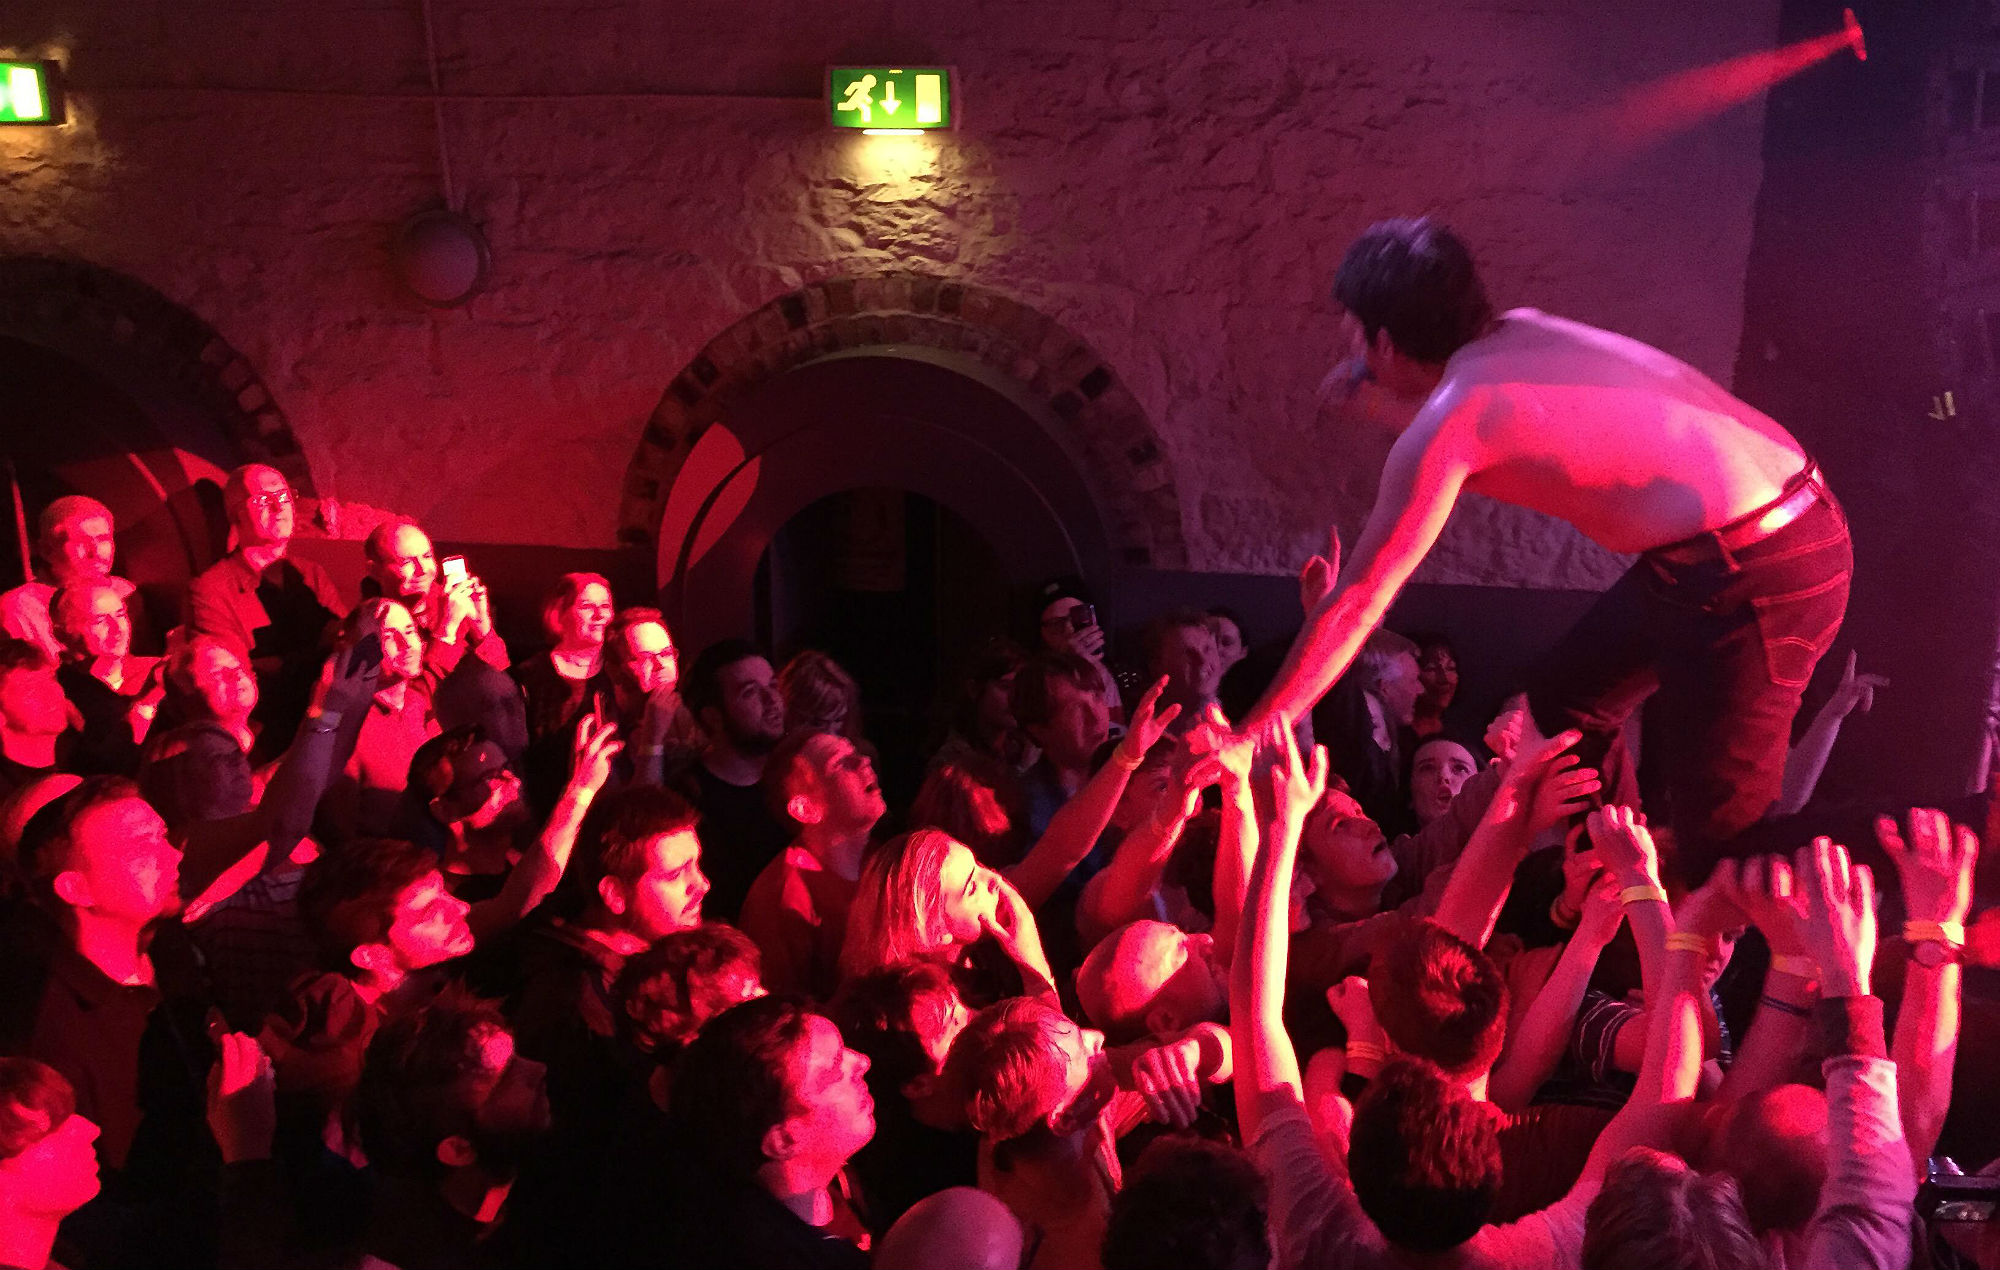 Crowdsurfing at a grassroots venue. Credit Brookfield / Stockimo / Alamy Stock Photo